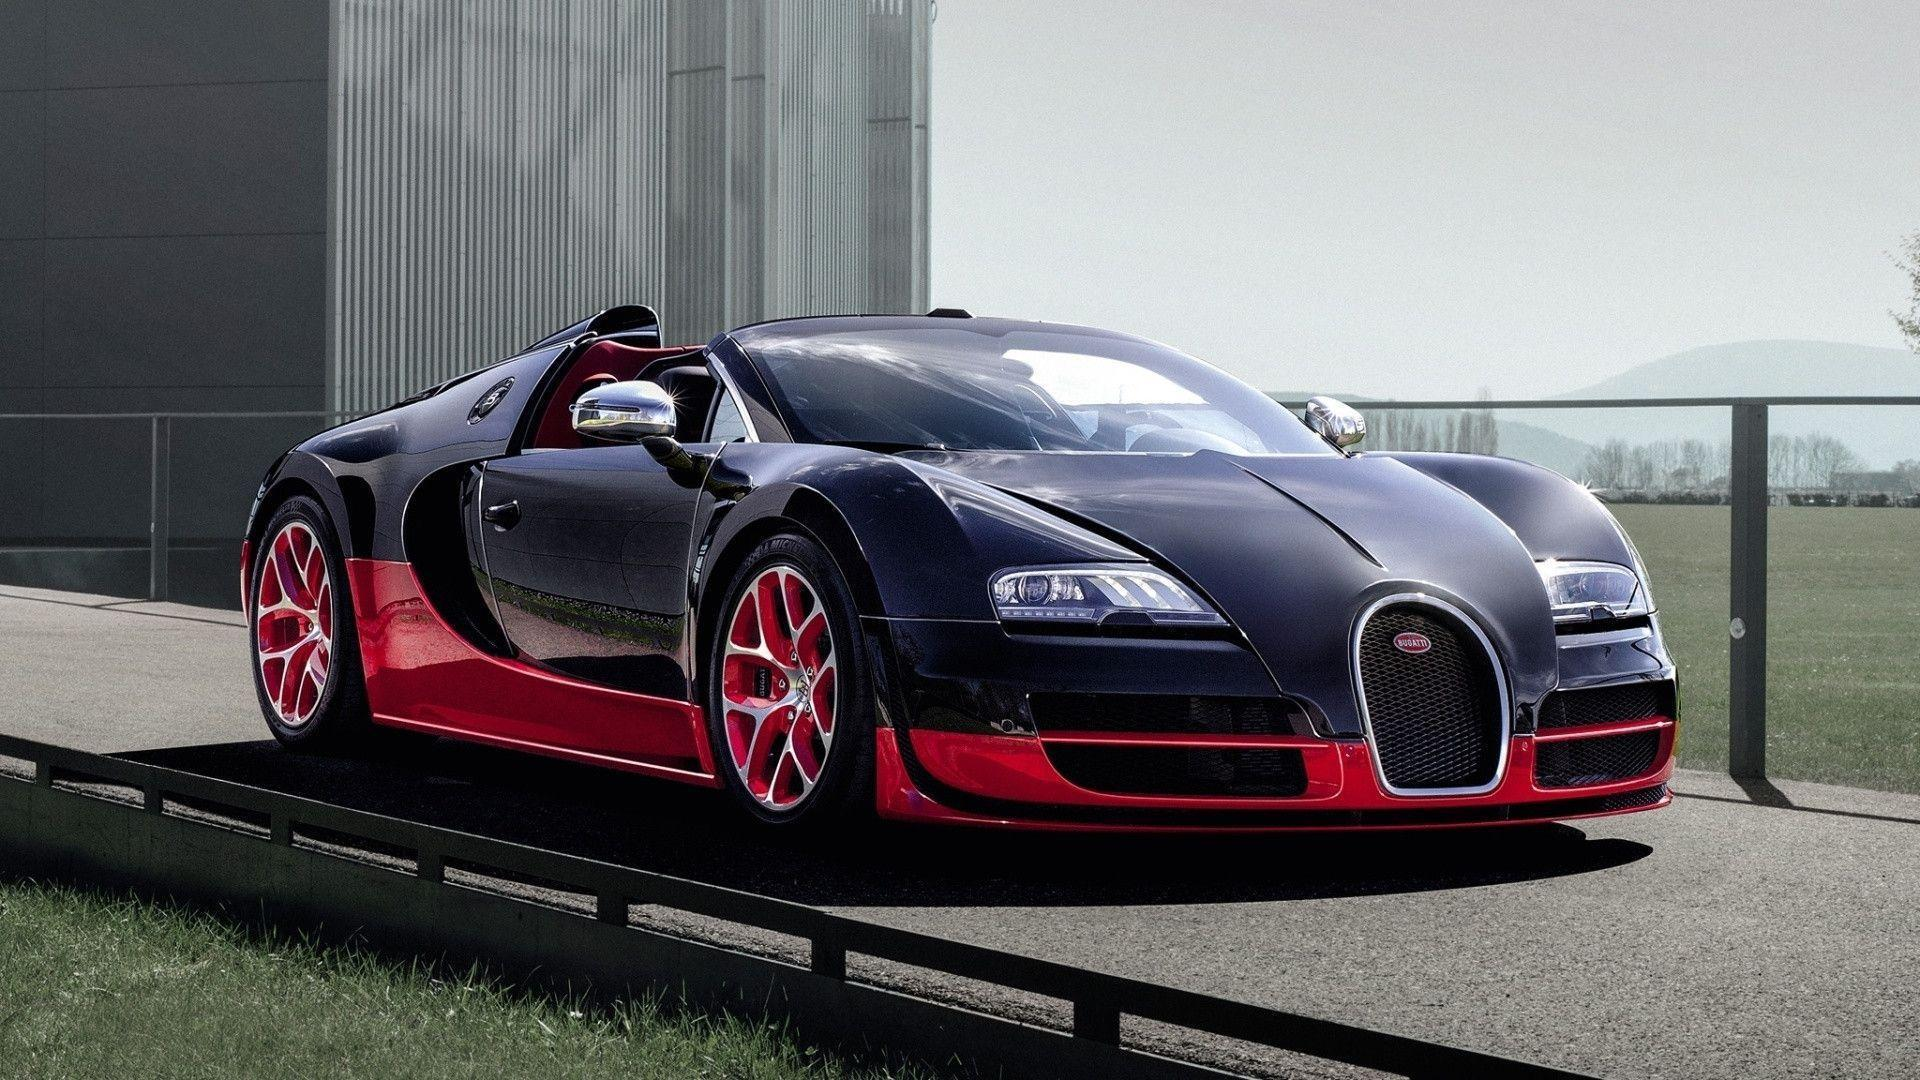 Amazing Bugatti Wallpaper #683 | CarsDiva